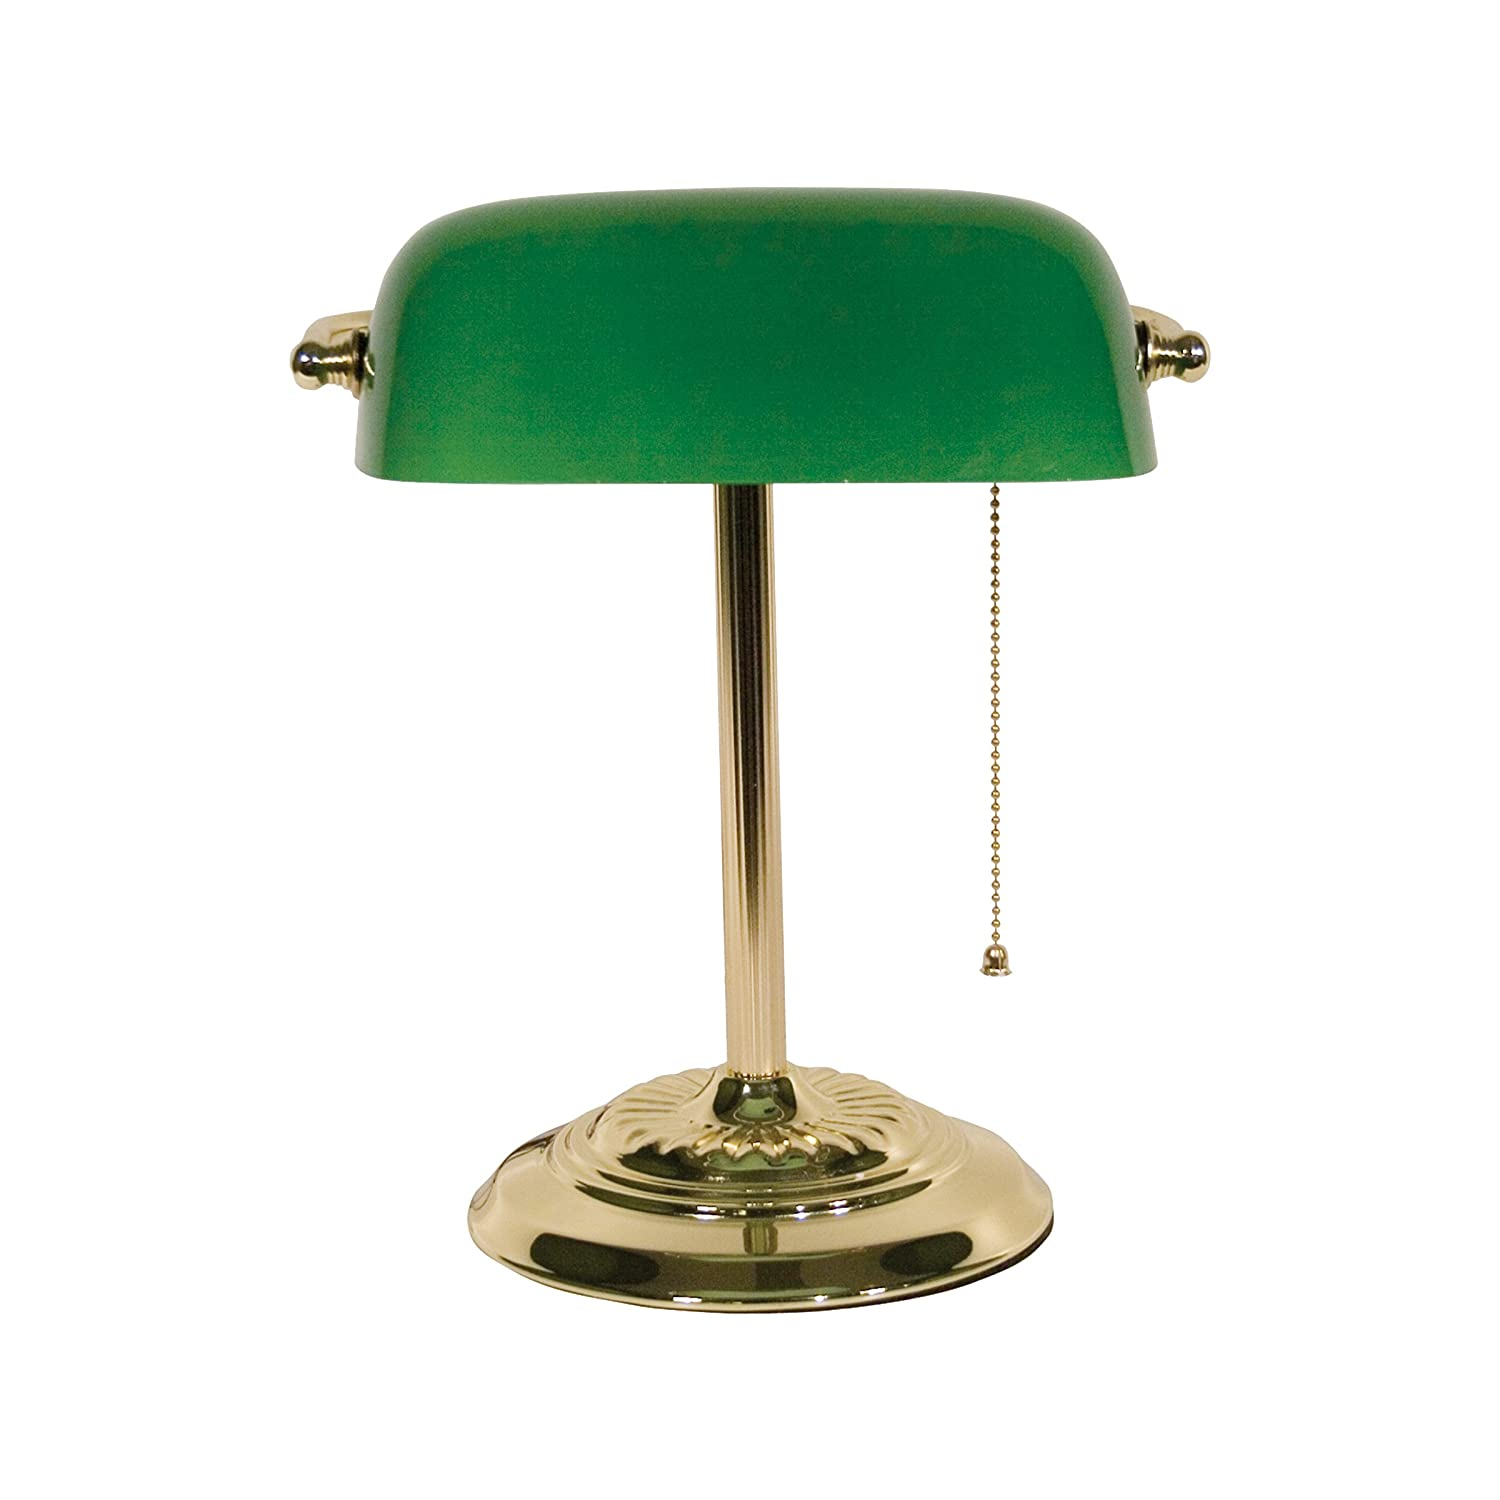 brass fish glass bankers classic style green desk with lamp shade